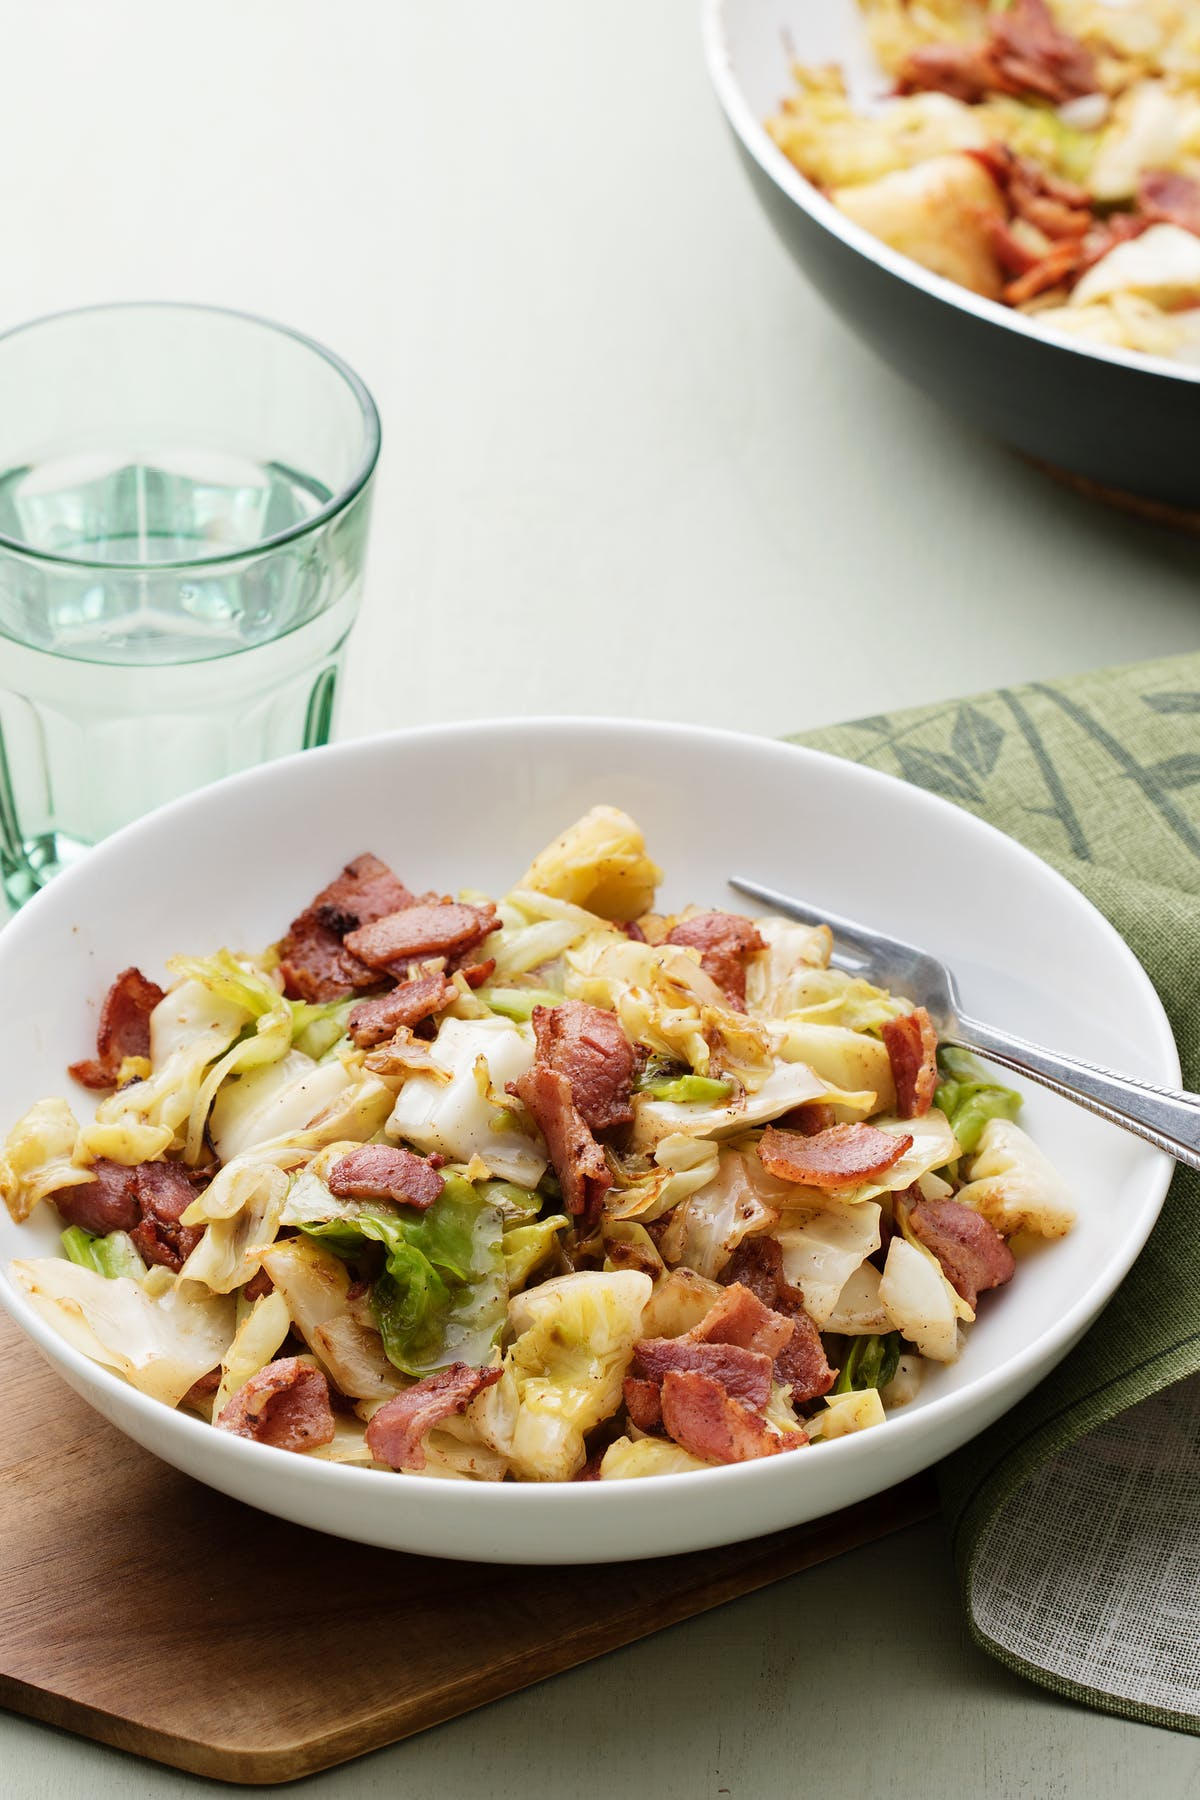 Fried cabbage with crispy bacon